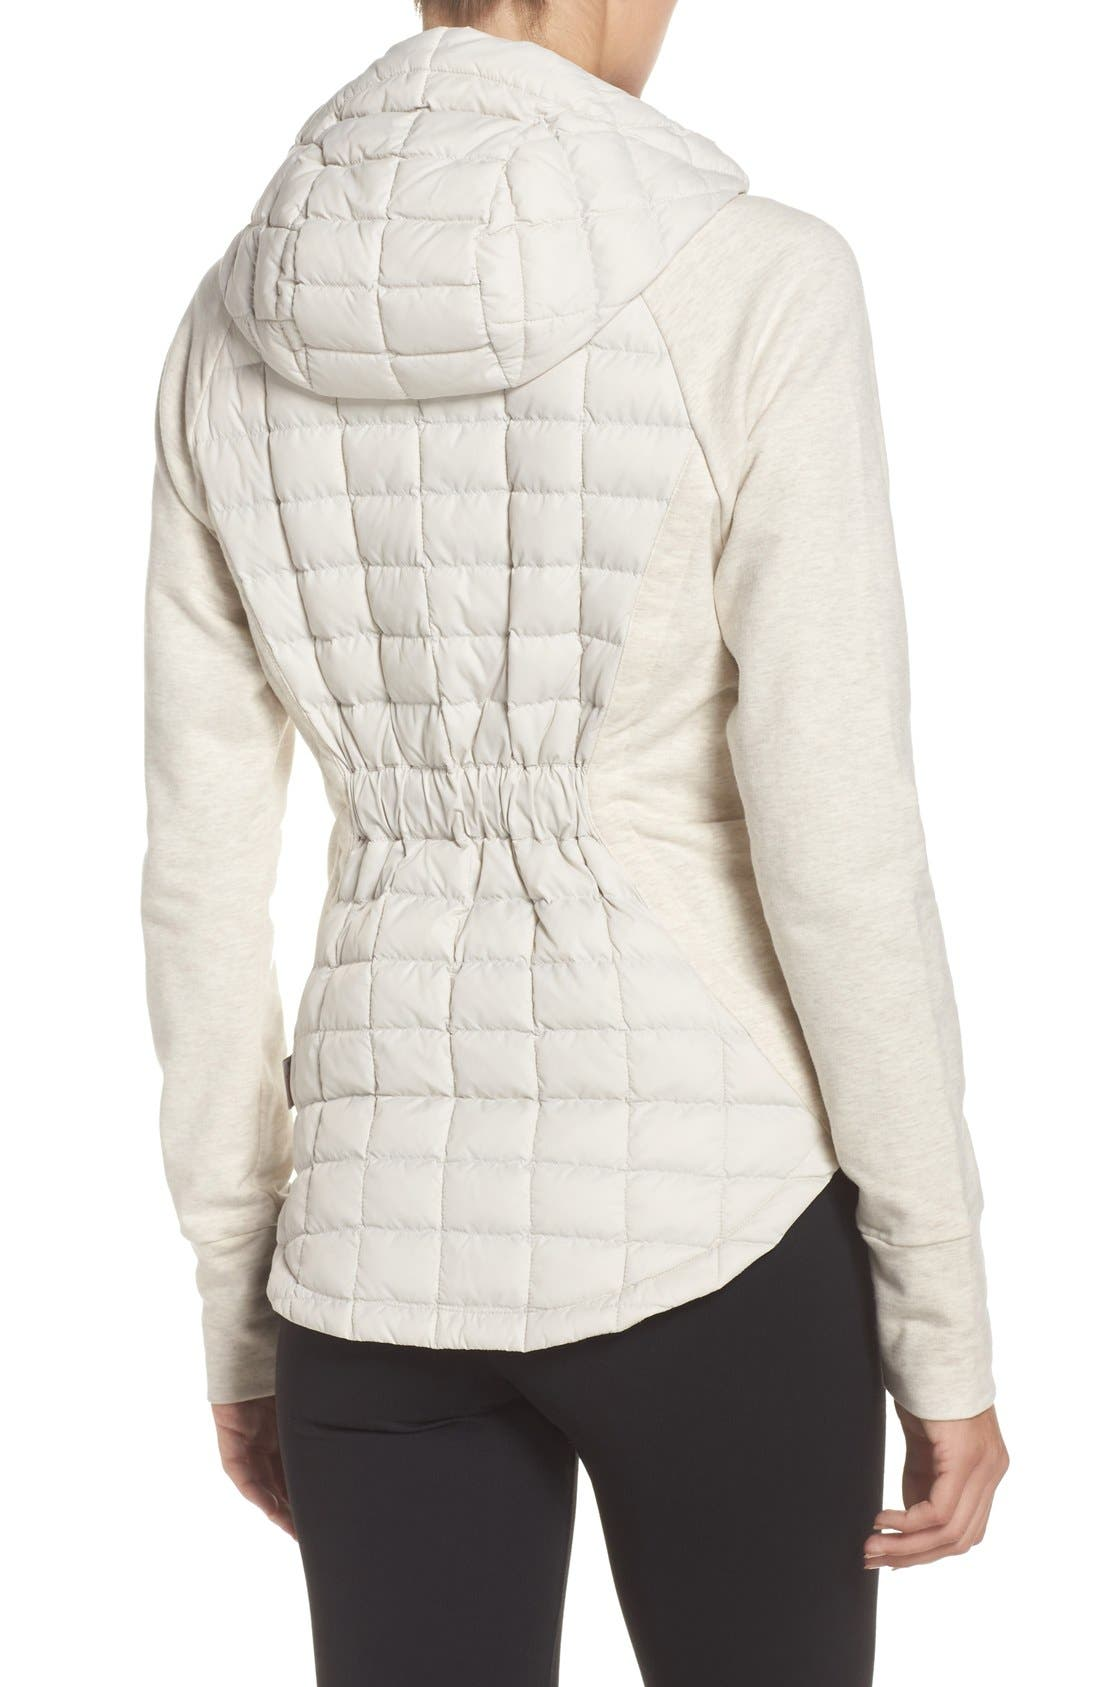 'Endeavor' ThermoBall PrimaLoft<sup>®</sup> Quilted Jacket,                             Alternate thumbnail 2, color,                             Moonlight Ivory/ Ivory White